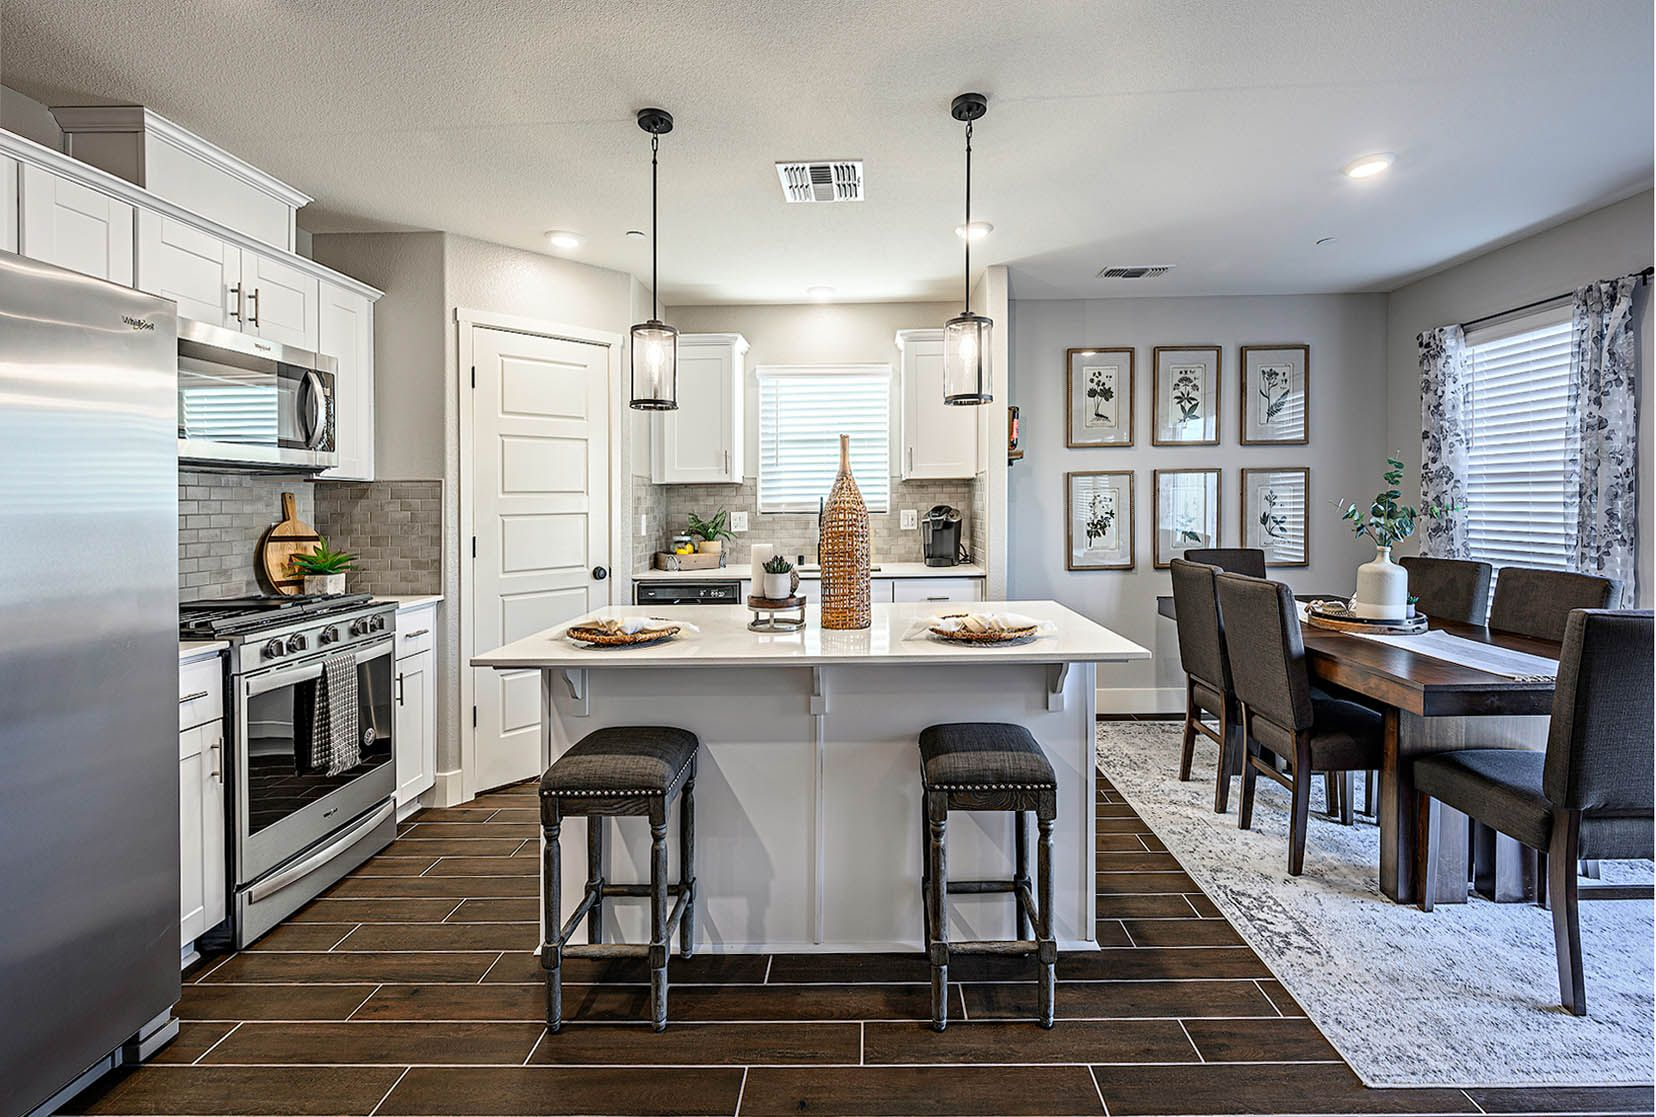 Kitchen featured in the Adams By D.R. Horton in Bakersfield, CA